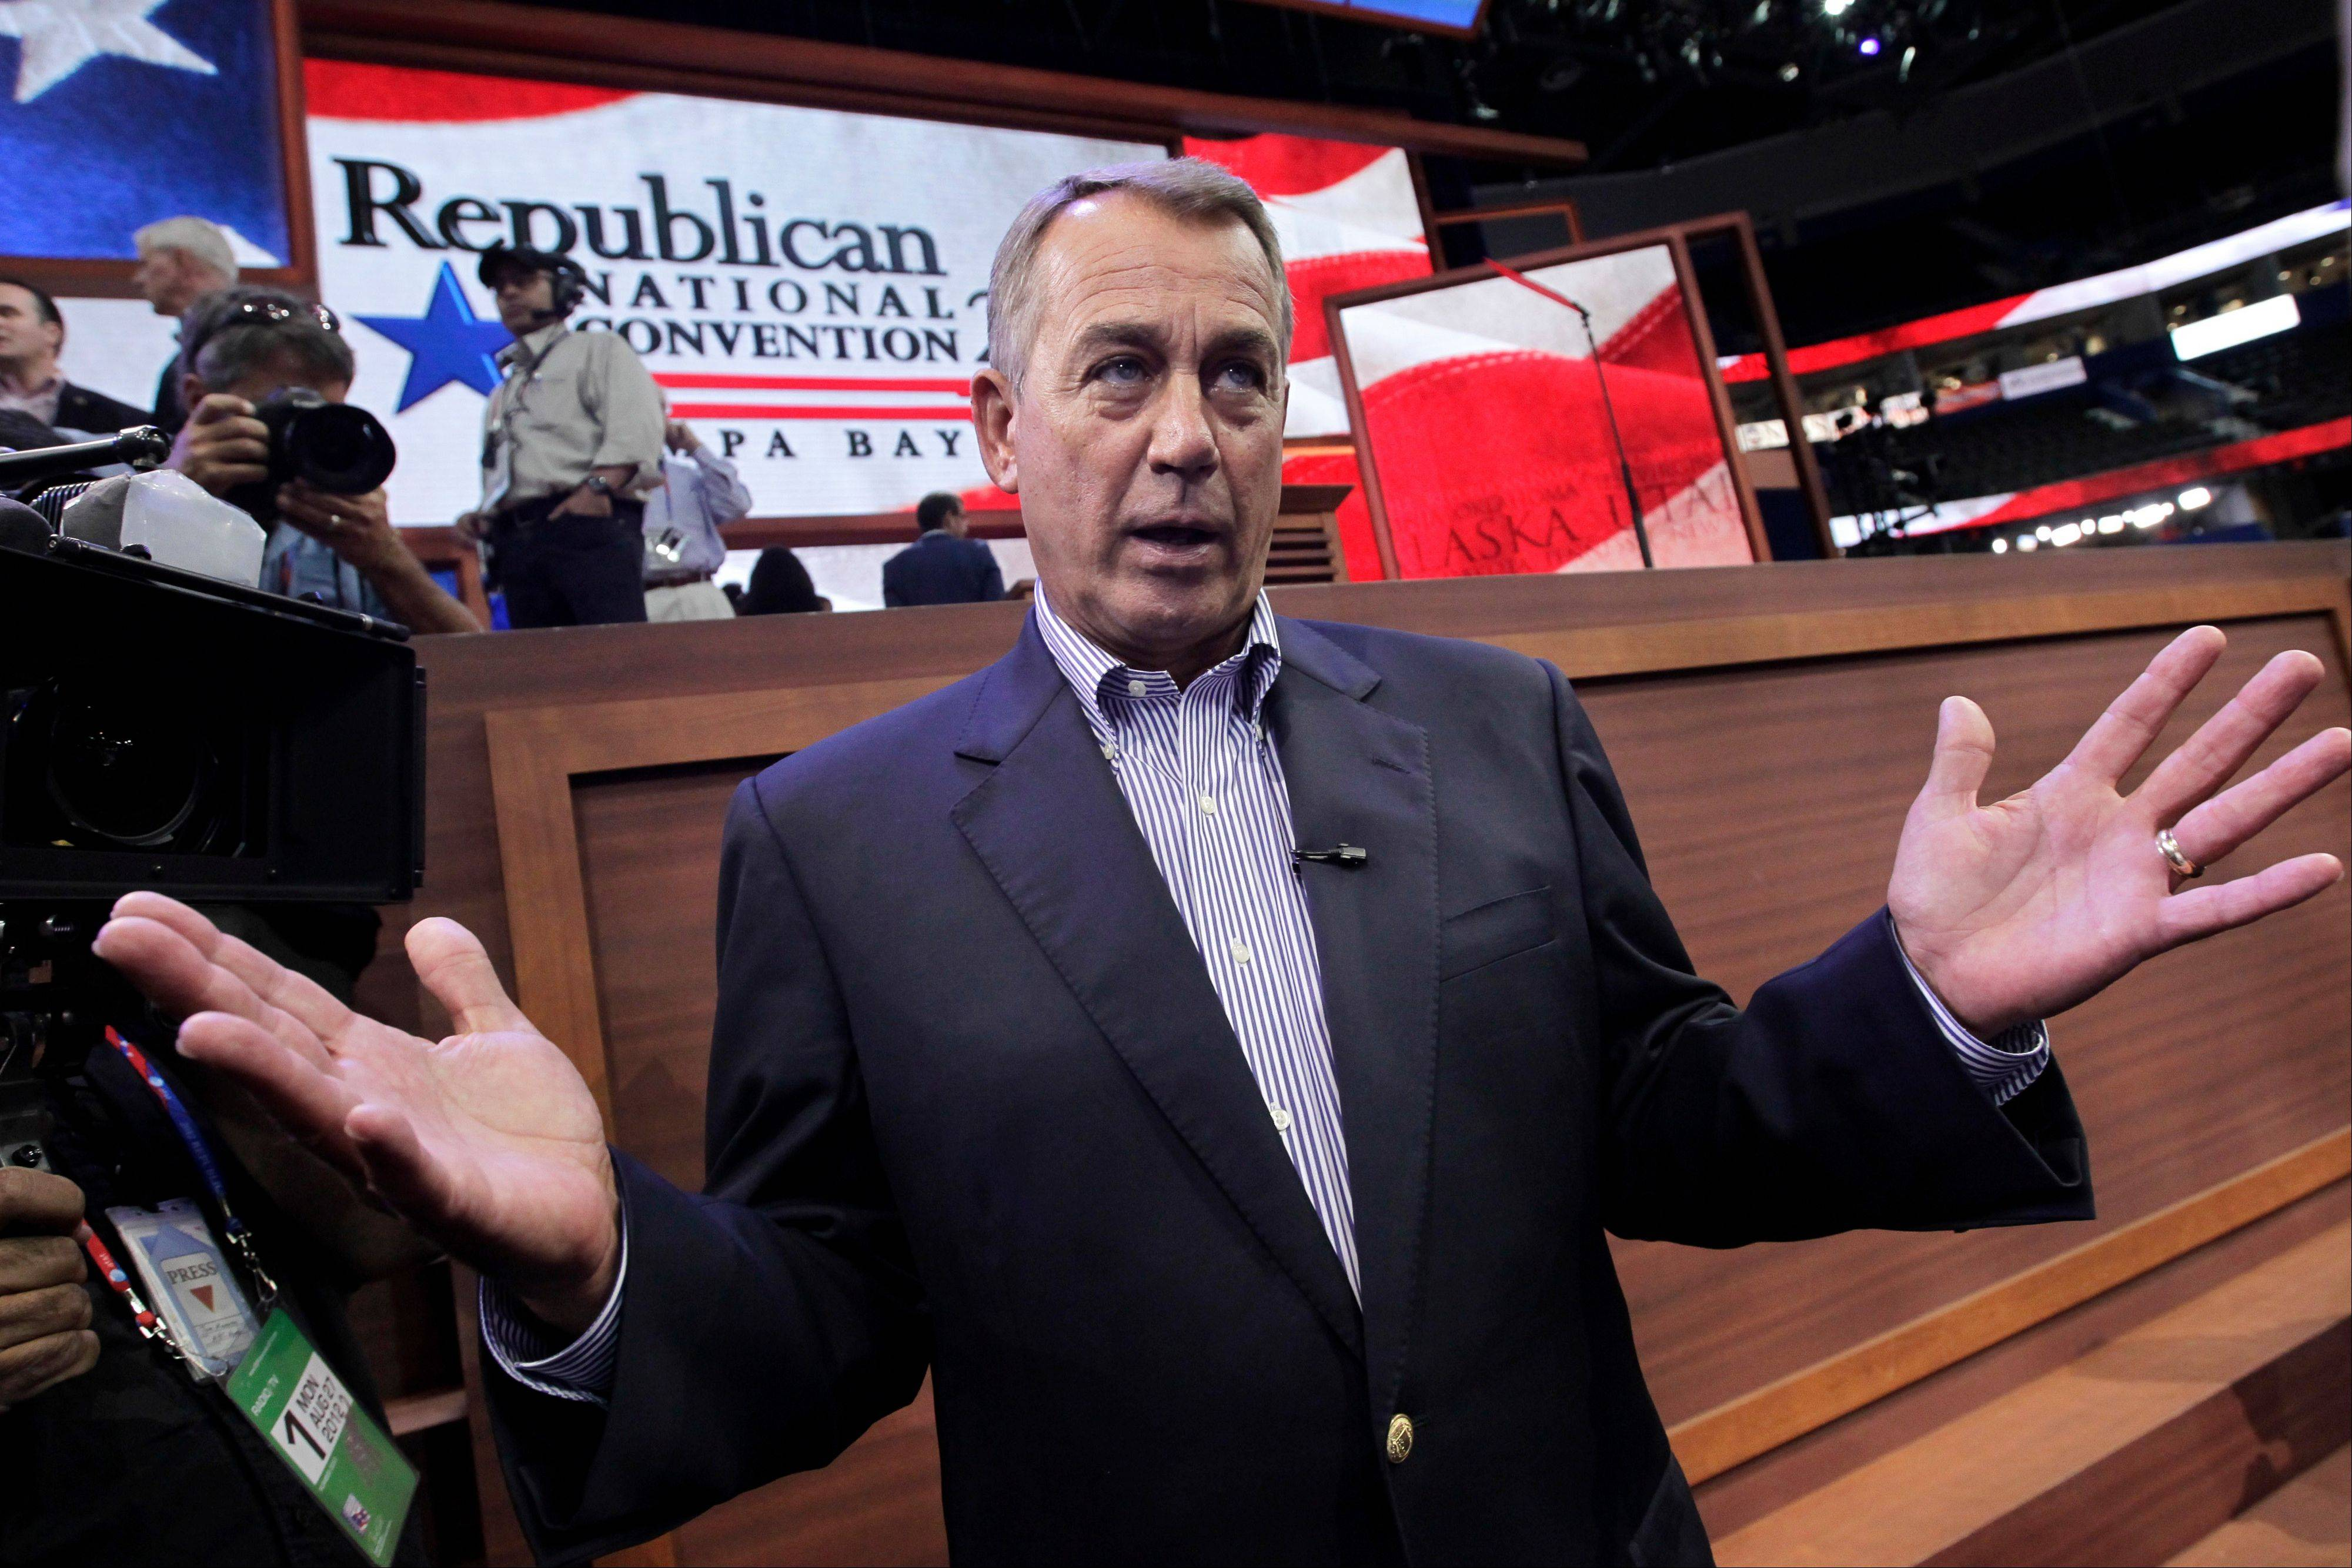 Boehner: Illinois wins crucial to keeping GOP Congress